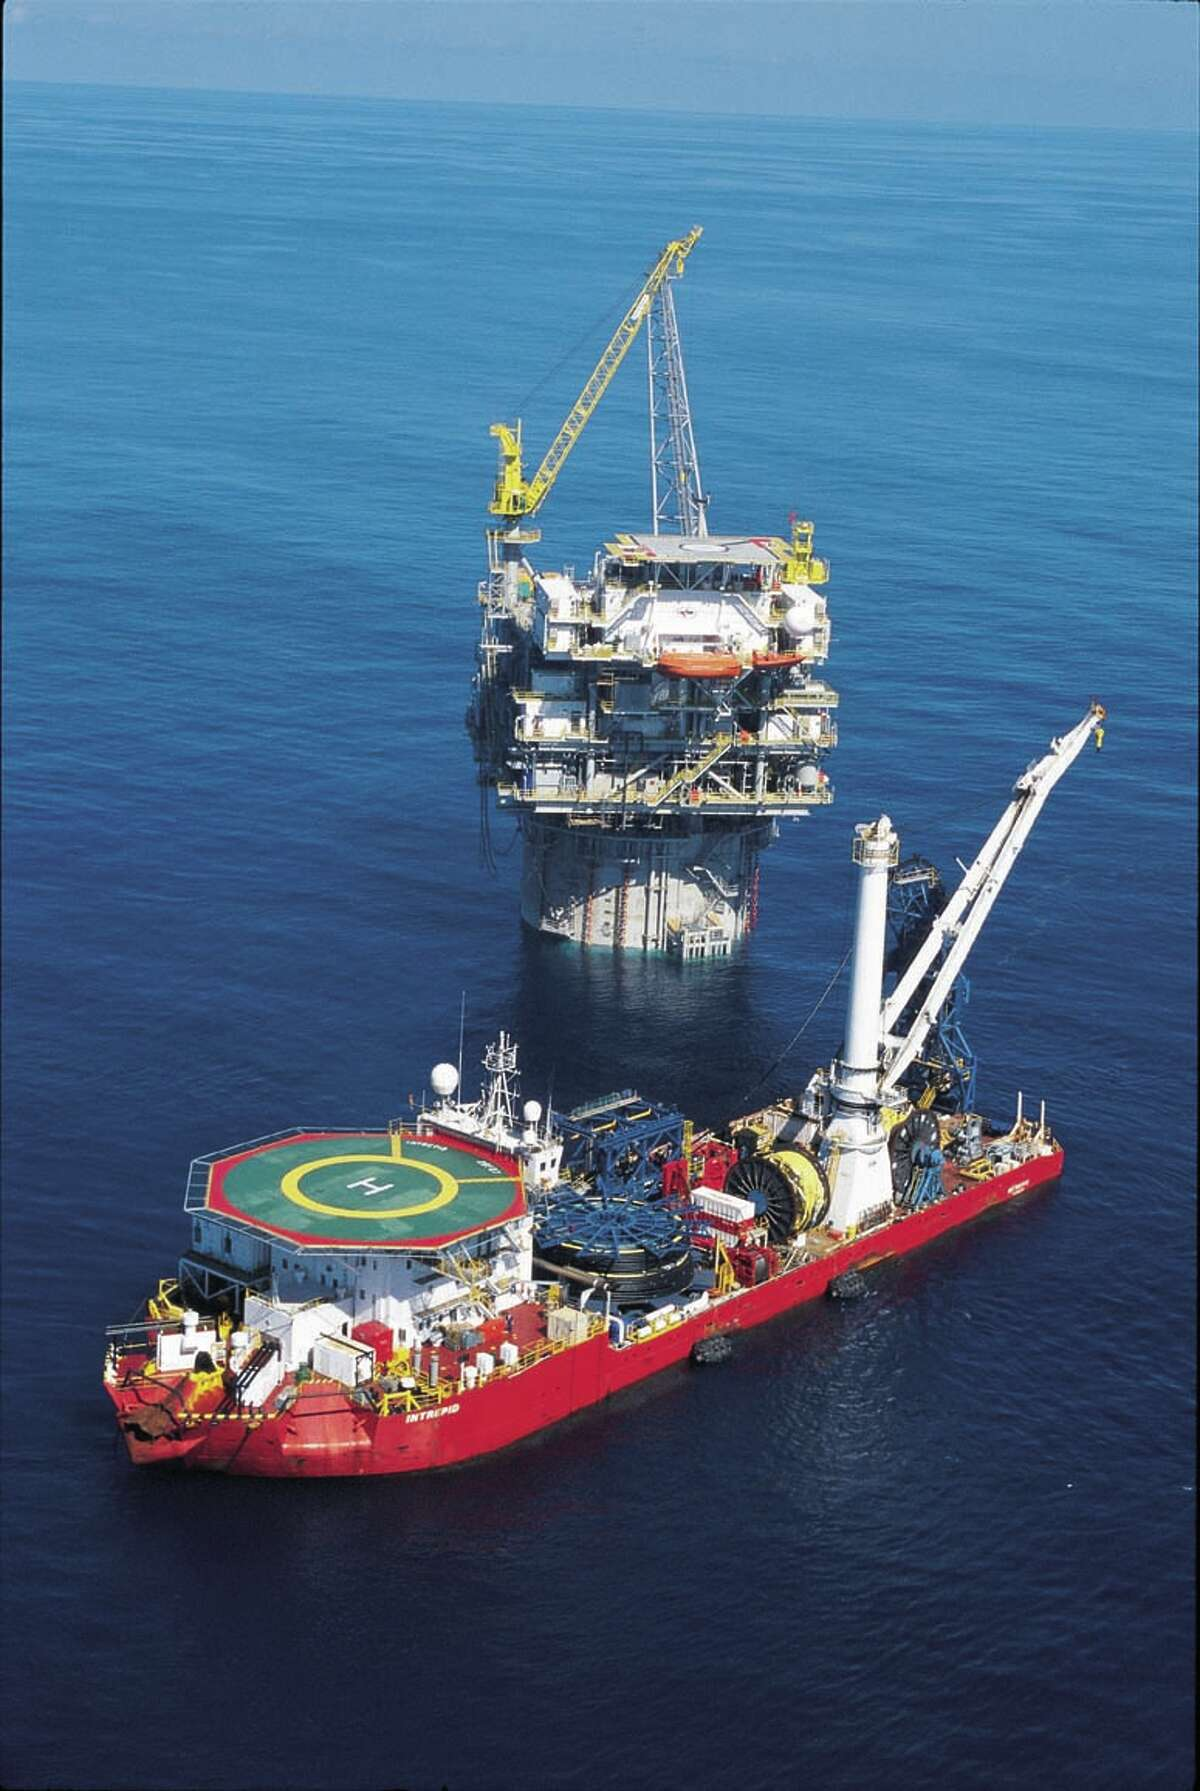 Cal Dive International, which provides maintenance services for offshore facilities and pipelines, has filed for Chapter 11.